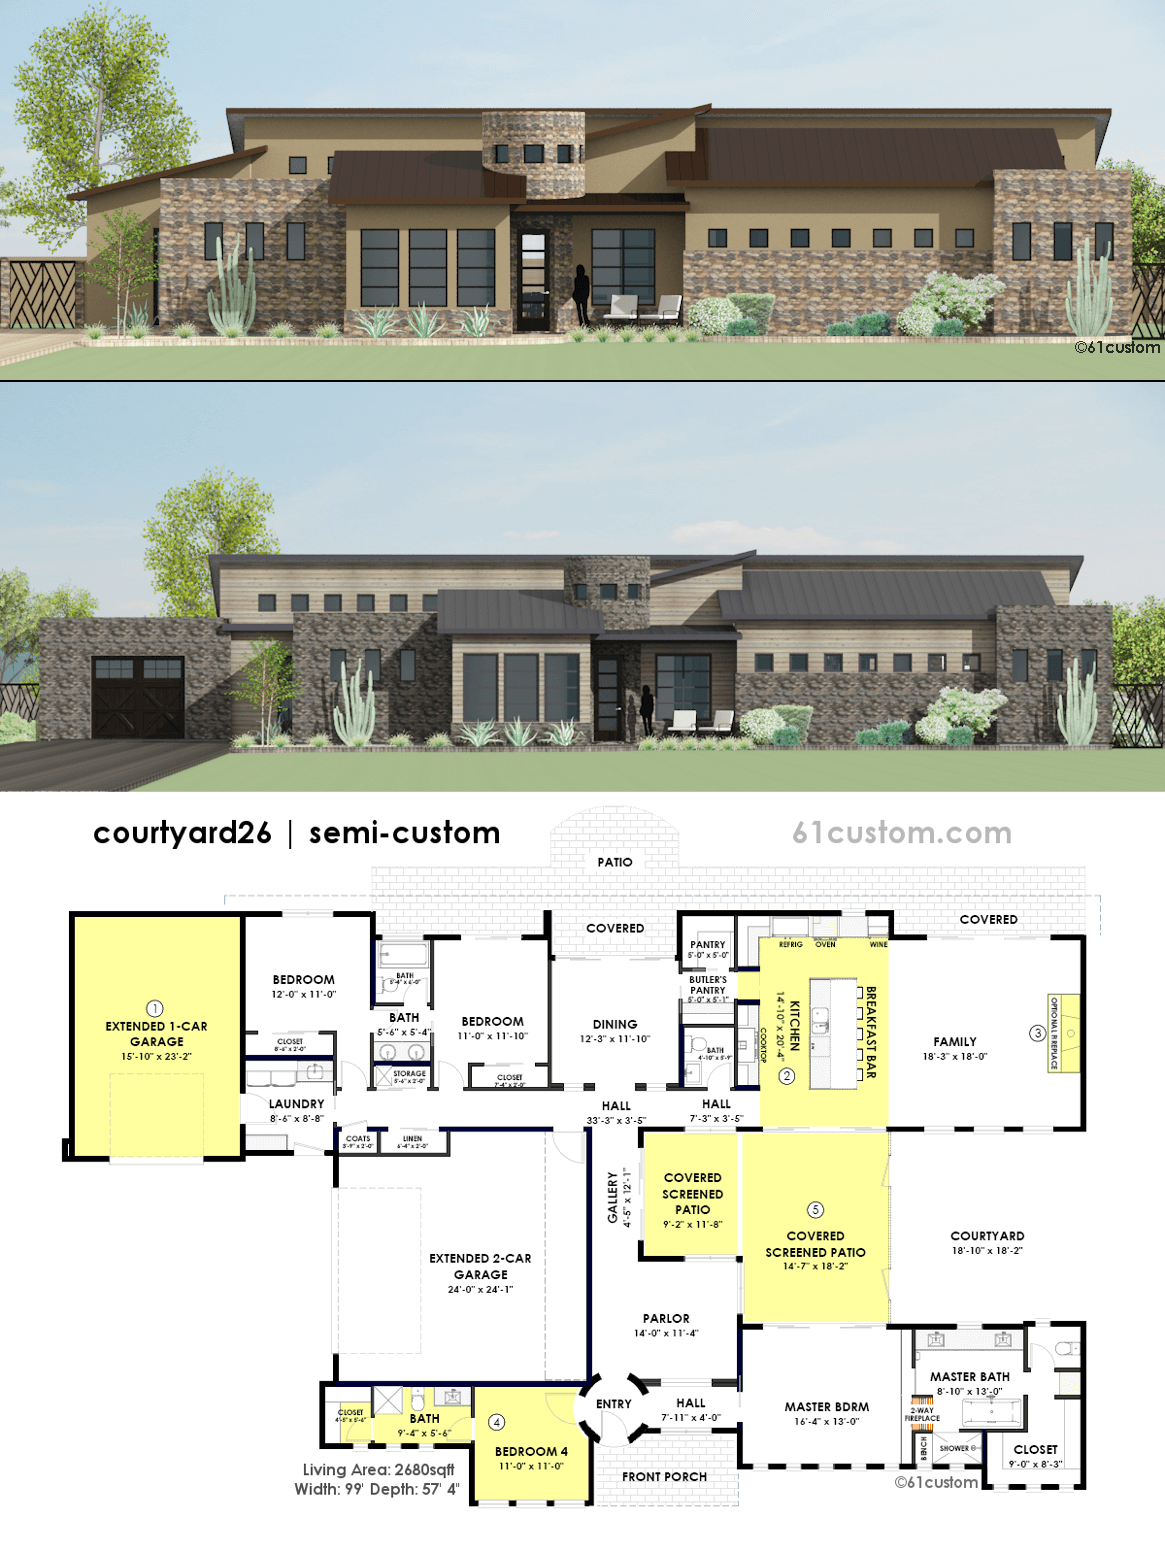 Contemporary side courtyard house plan 61custom for Modern house plans with photos